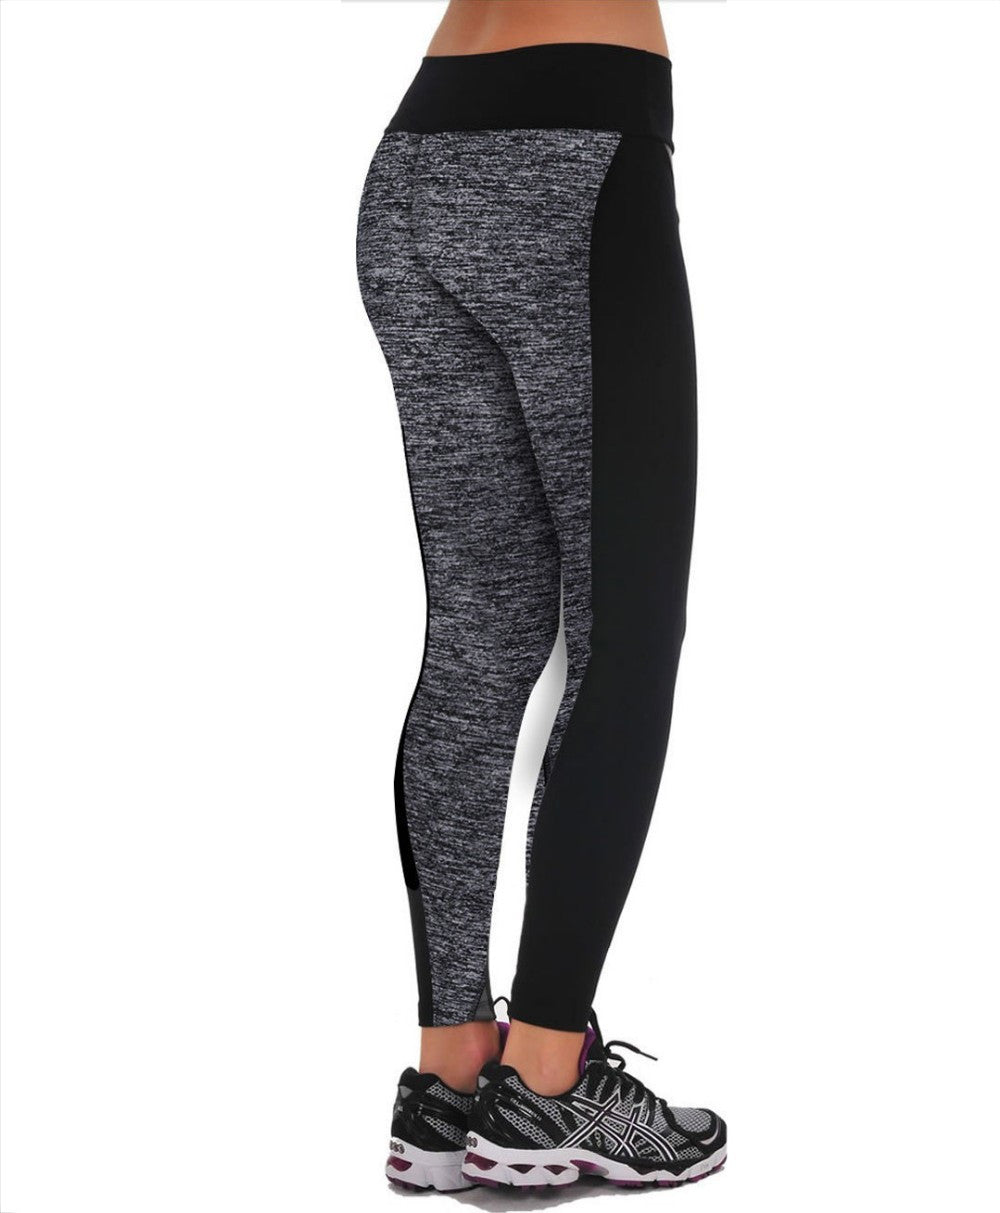 2017  Women's Leggings Two-Sided Fitness High Waist Elastic   (US)